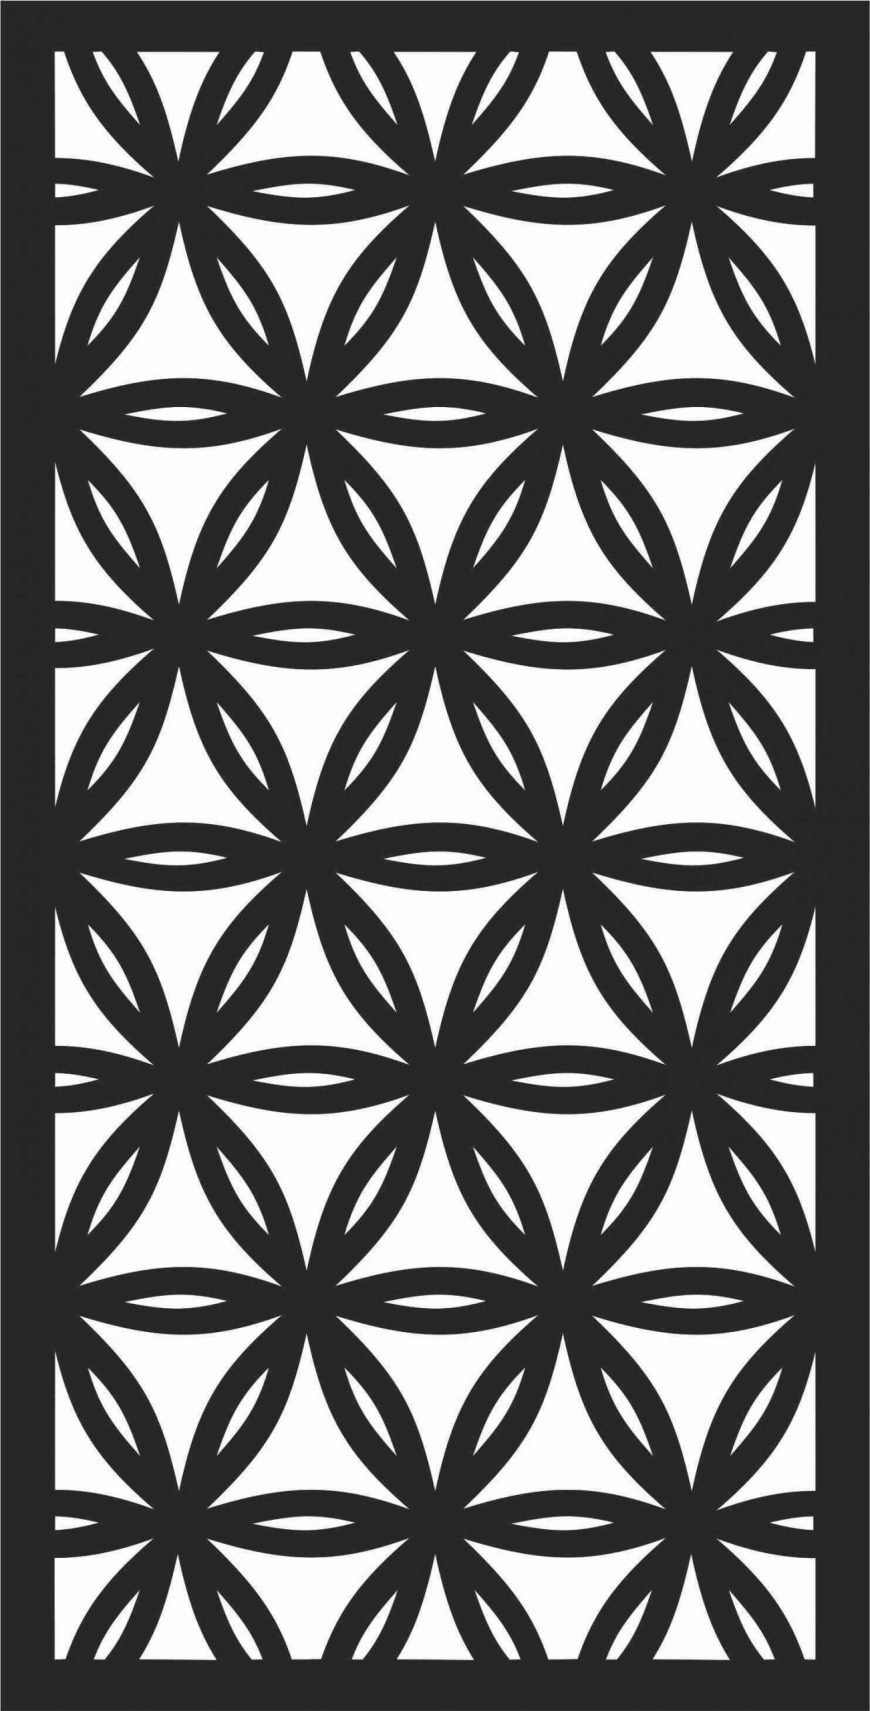 Decorative Screen Patterns For Laser Cutting 194 Free DXF File